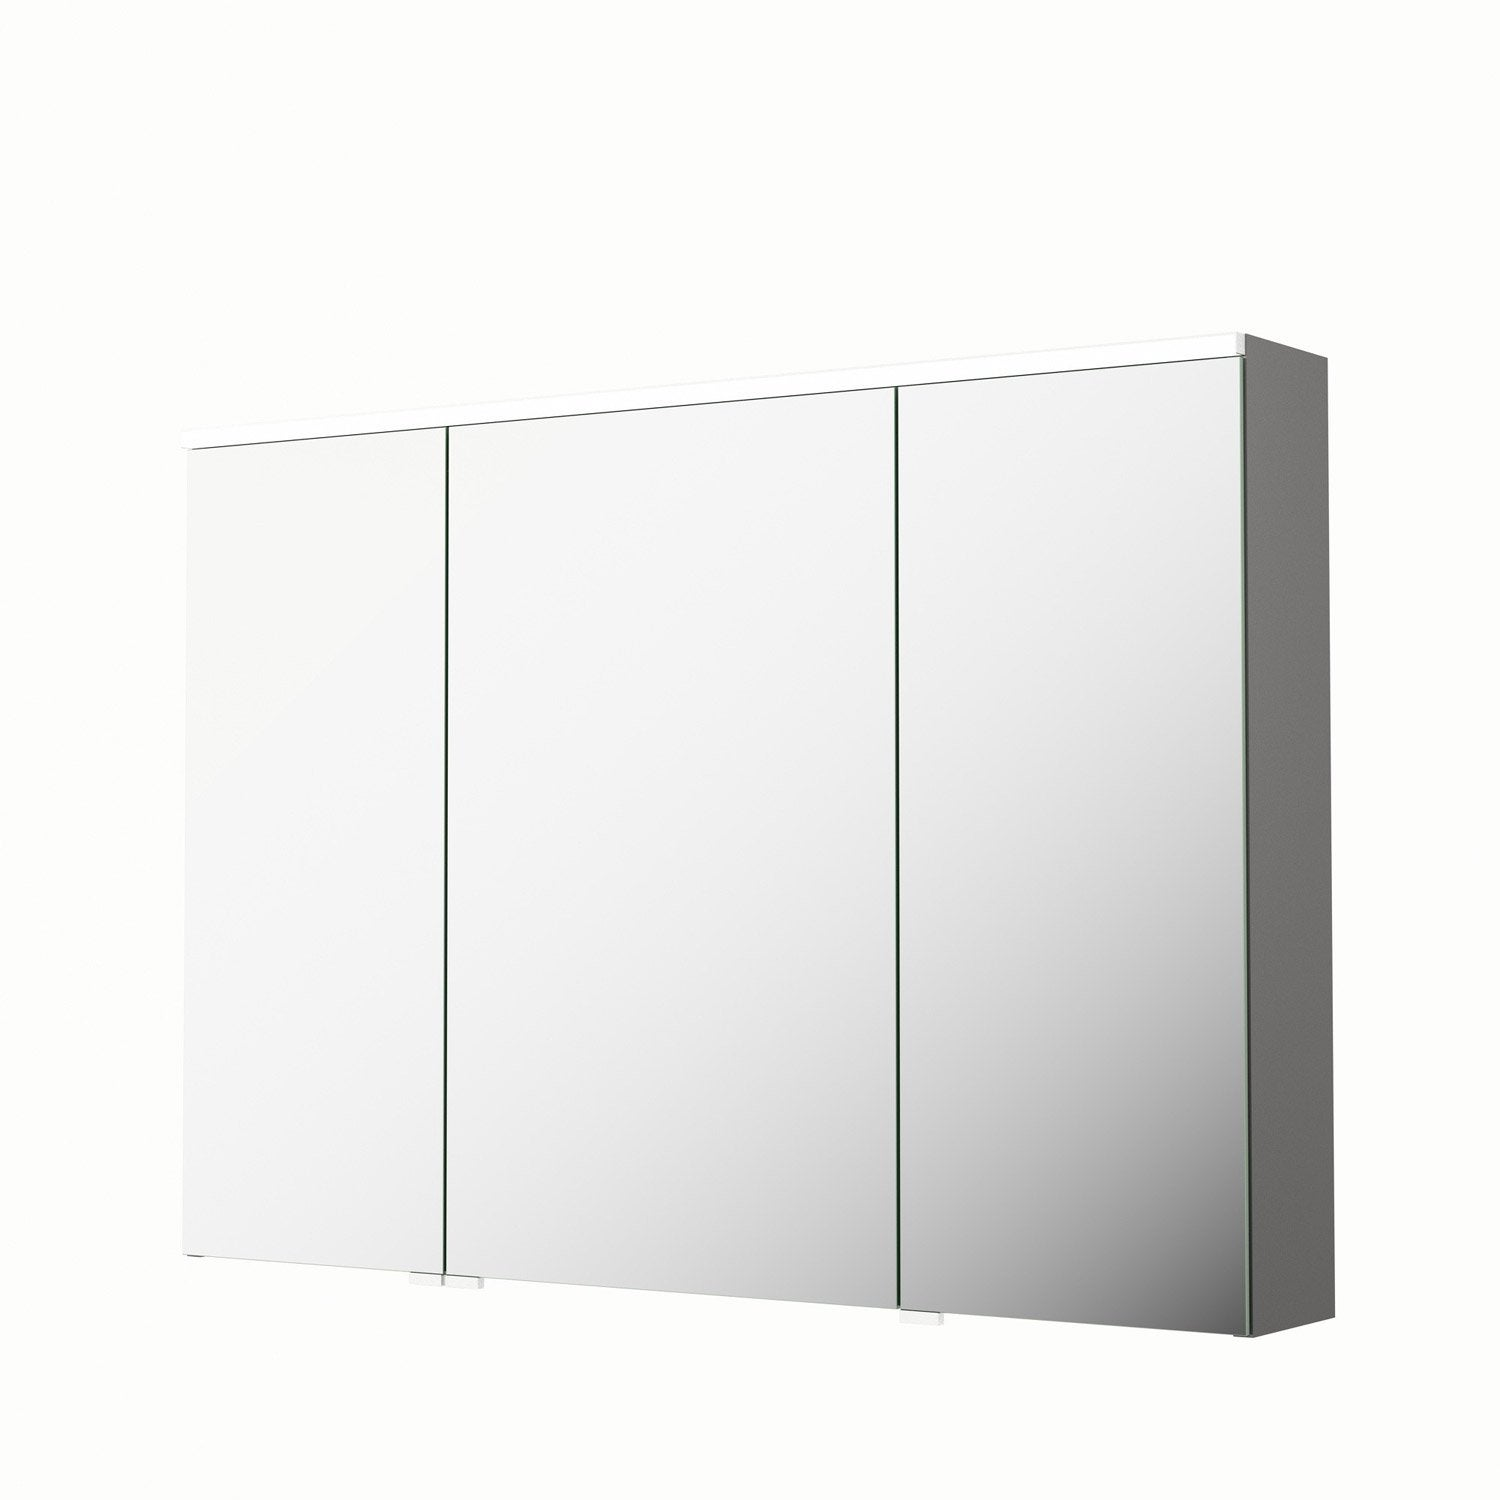 armoire de toilette lumineuse l 105 cm gris sensea neo leroy merlin. Black Bedroom Furniture Sets. Home Design Ideas